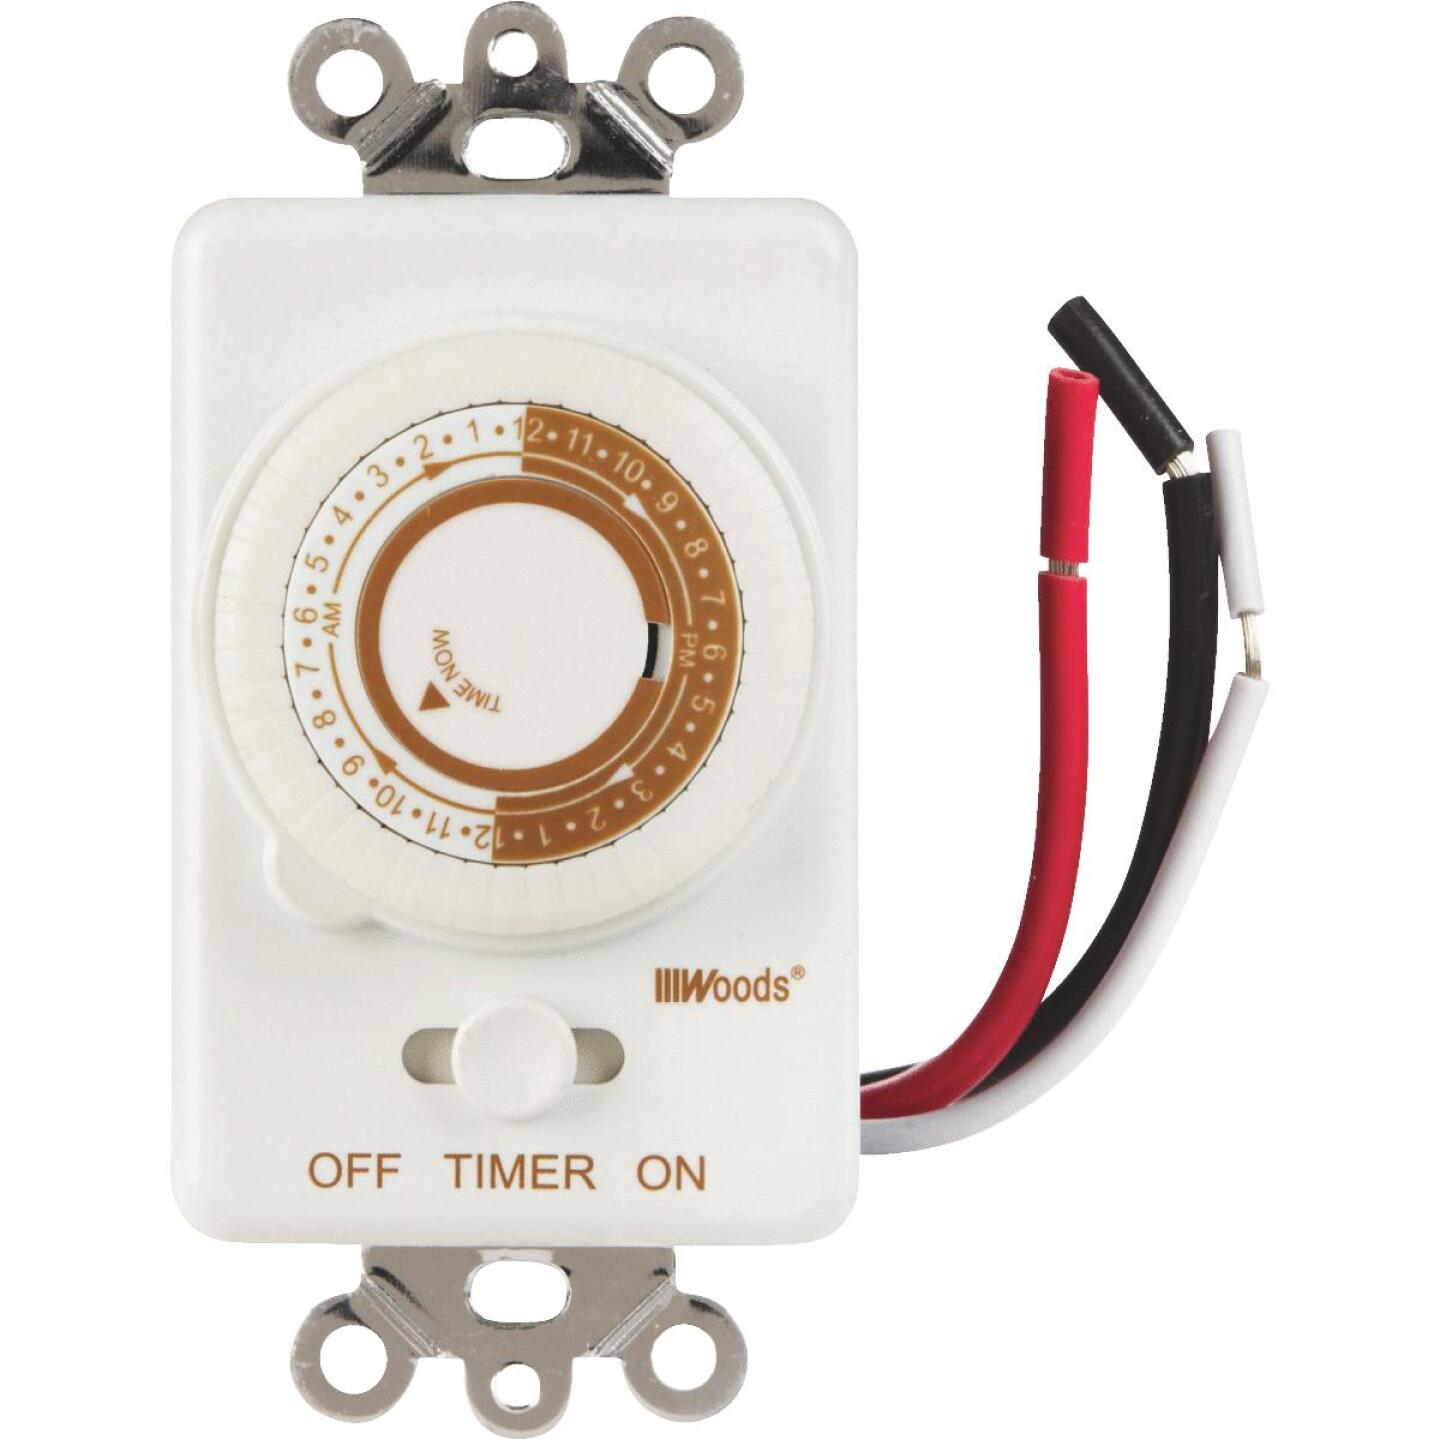 Woods 125V In-Wall 24-Hour Mechanical Timer Image 1